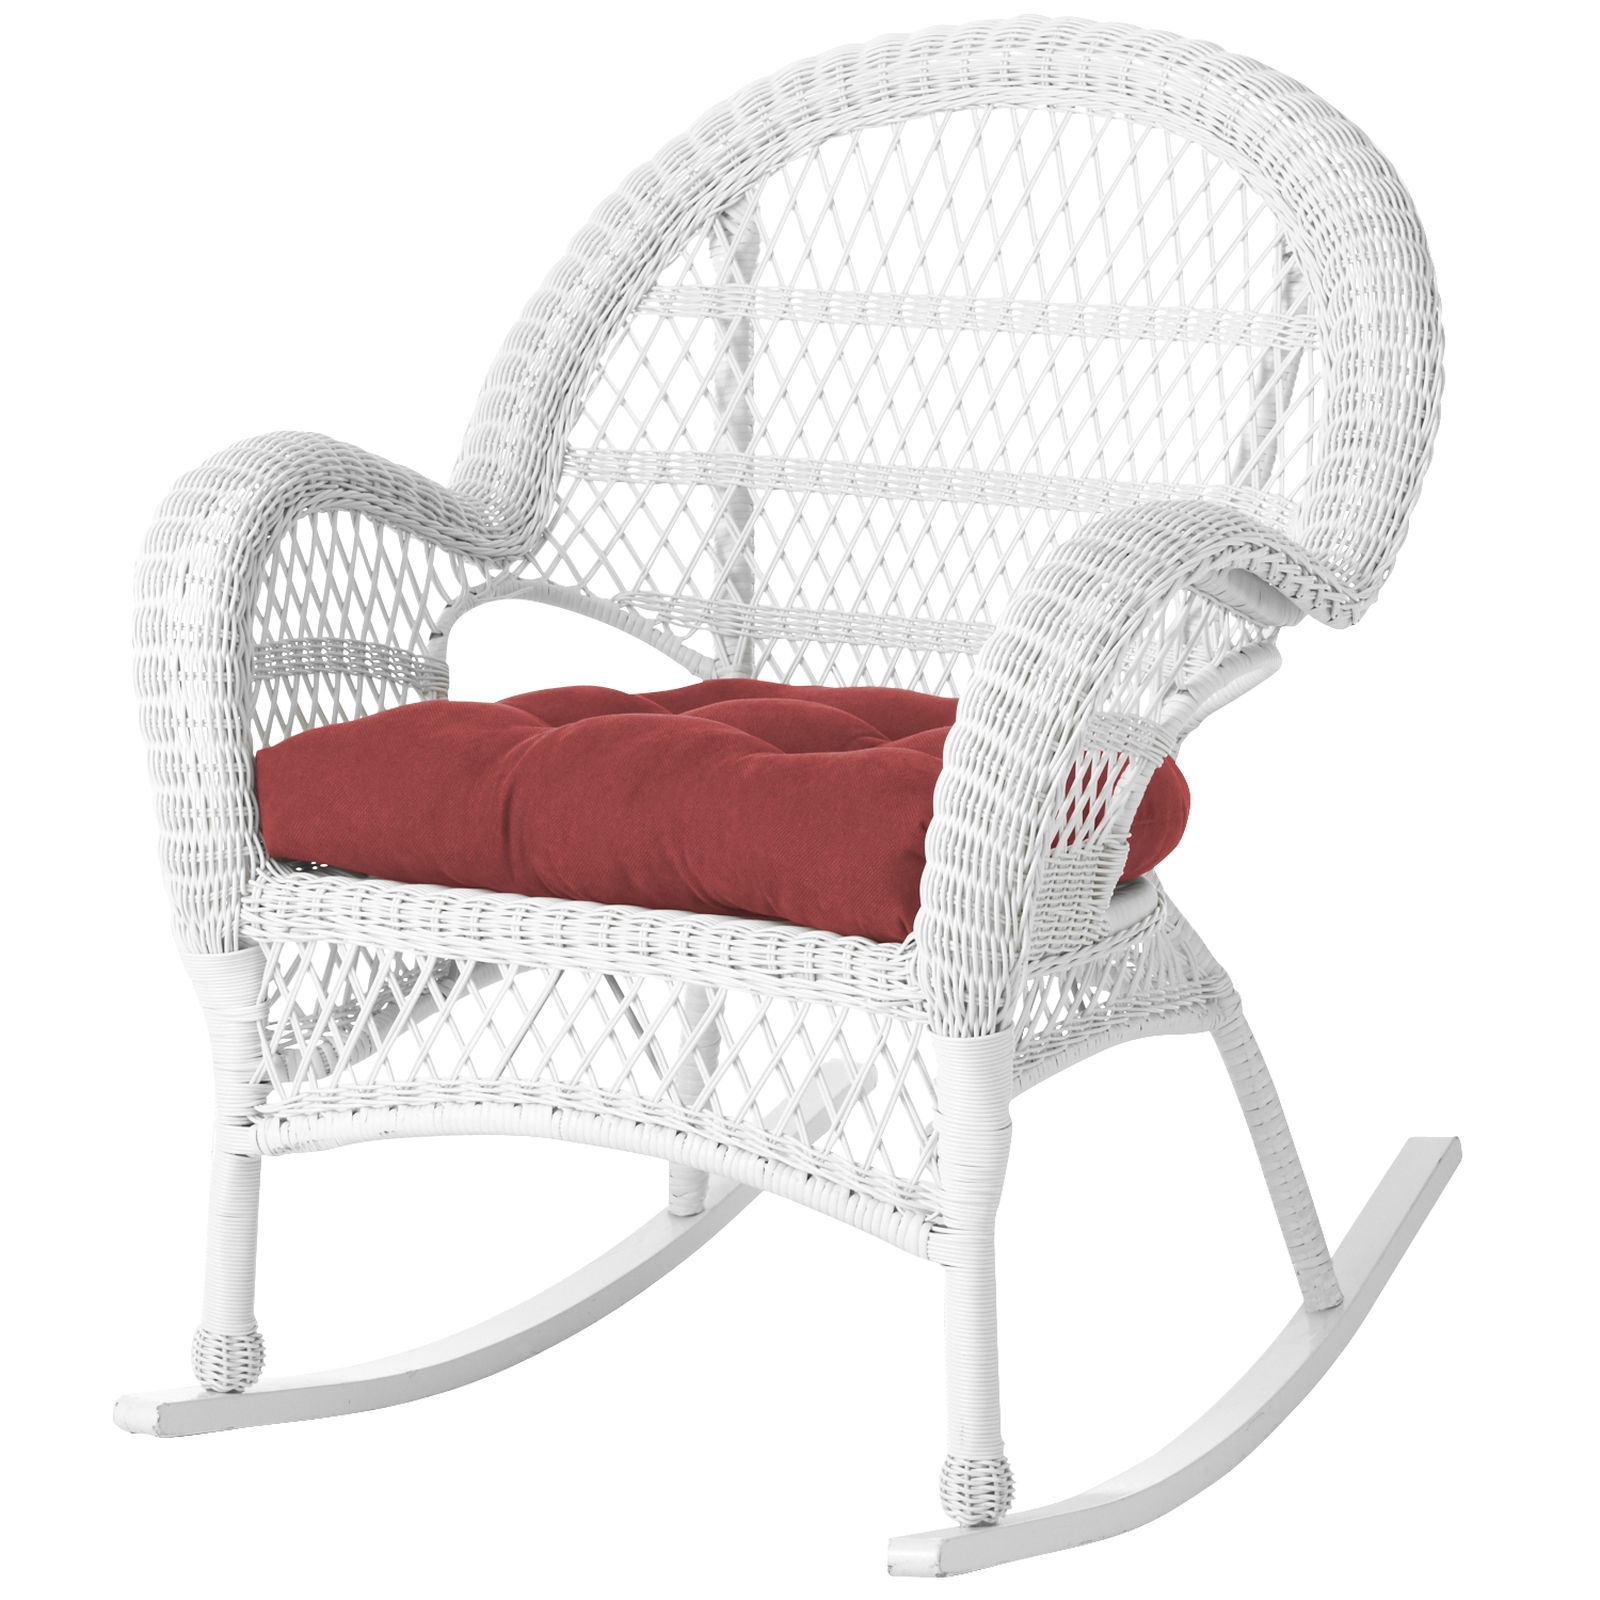 White Wicker Rocking Chairs Within Latest White Wicker Rocking Chair Peachy Ideas – Chair Ideas (View 7 of 15)